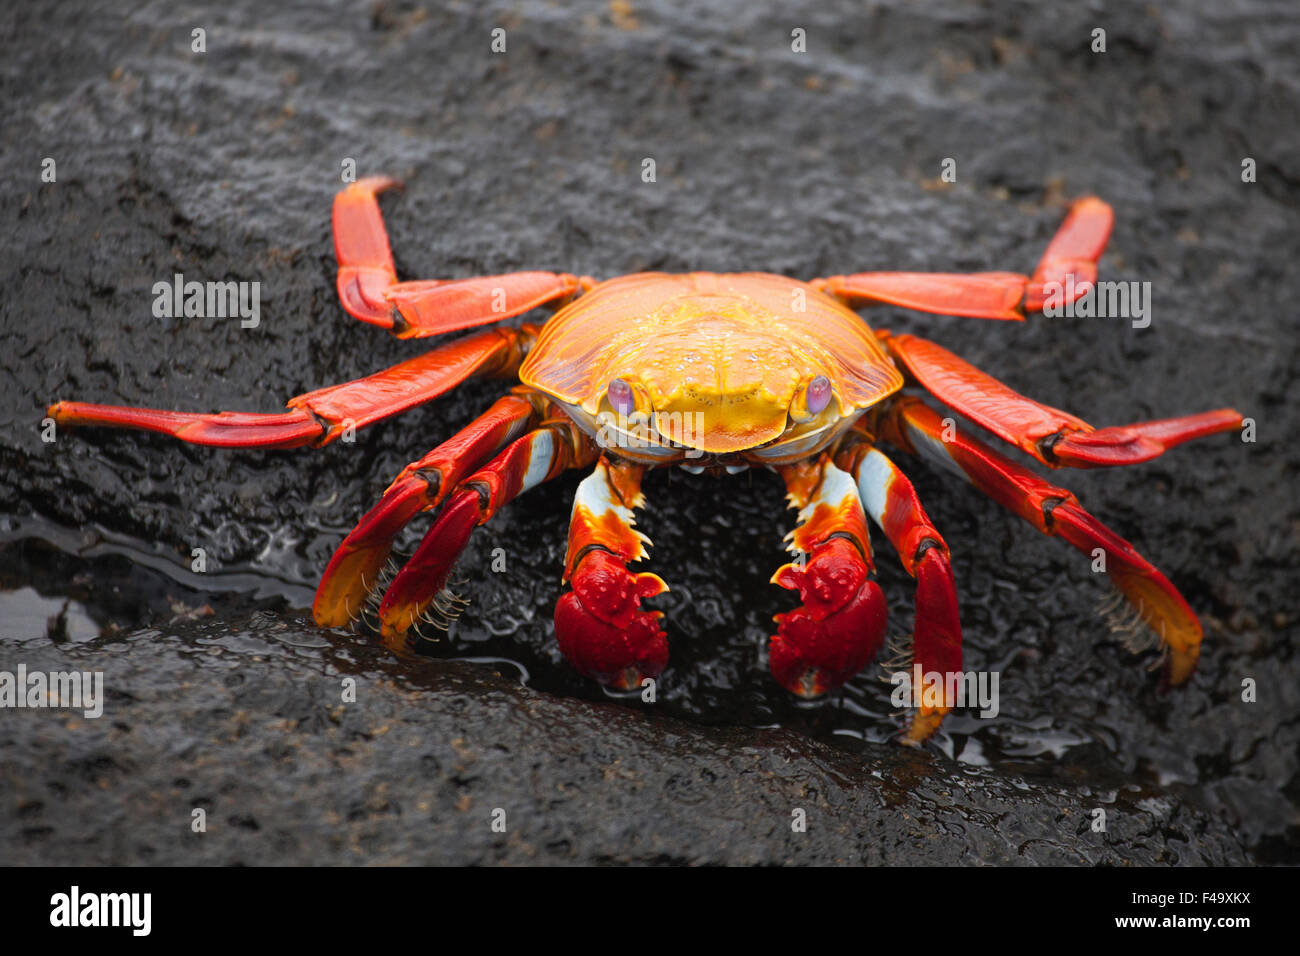 Sally Lightfoot Crab (Grapsus grapsus) on lava rock in Galapagos National Park - Stock Image